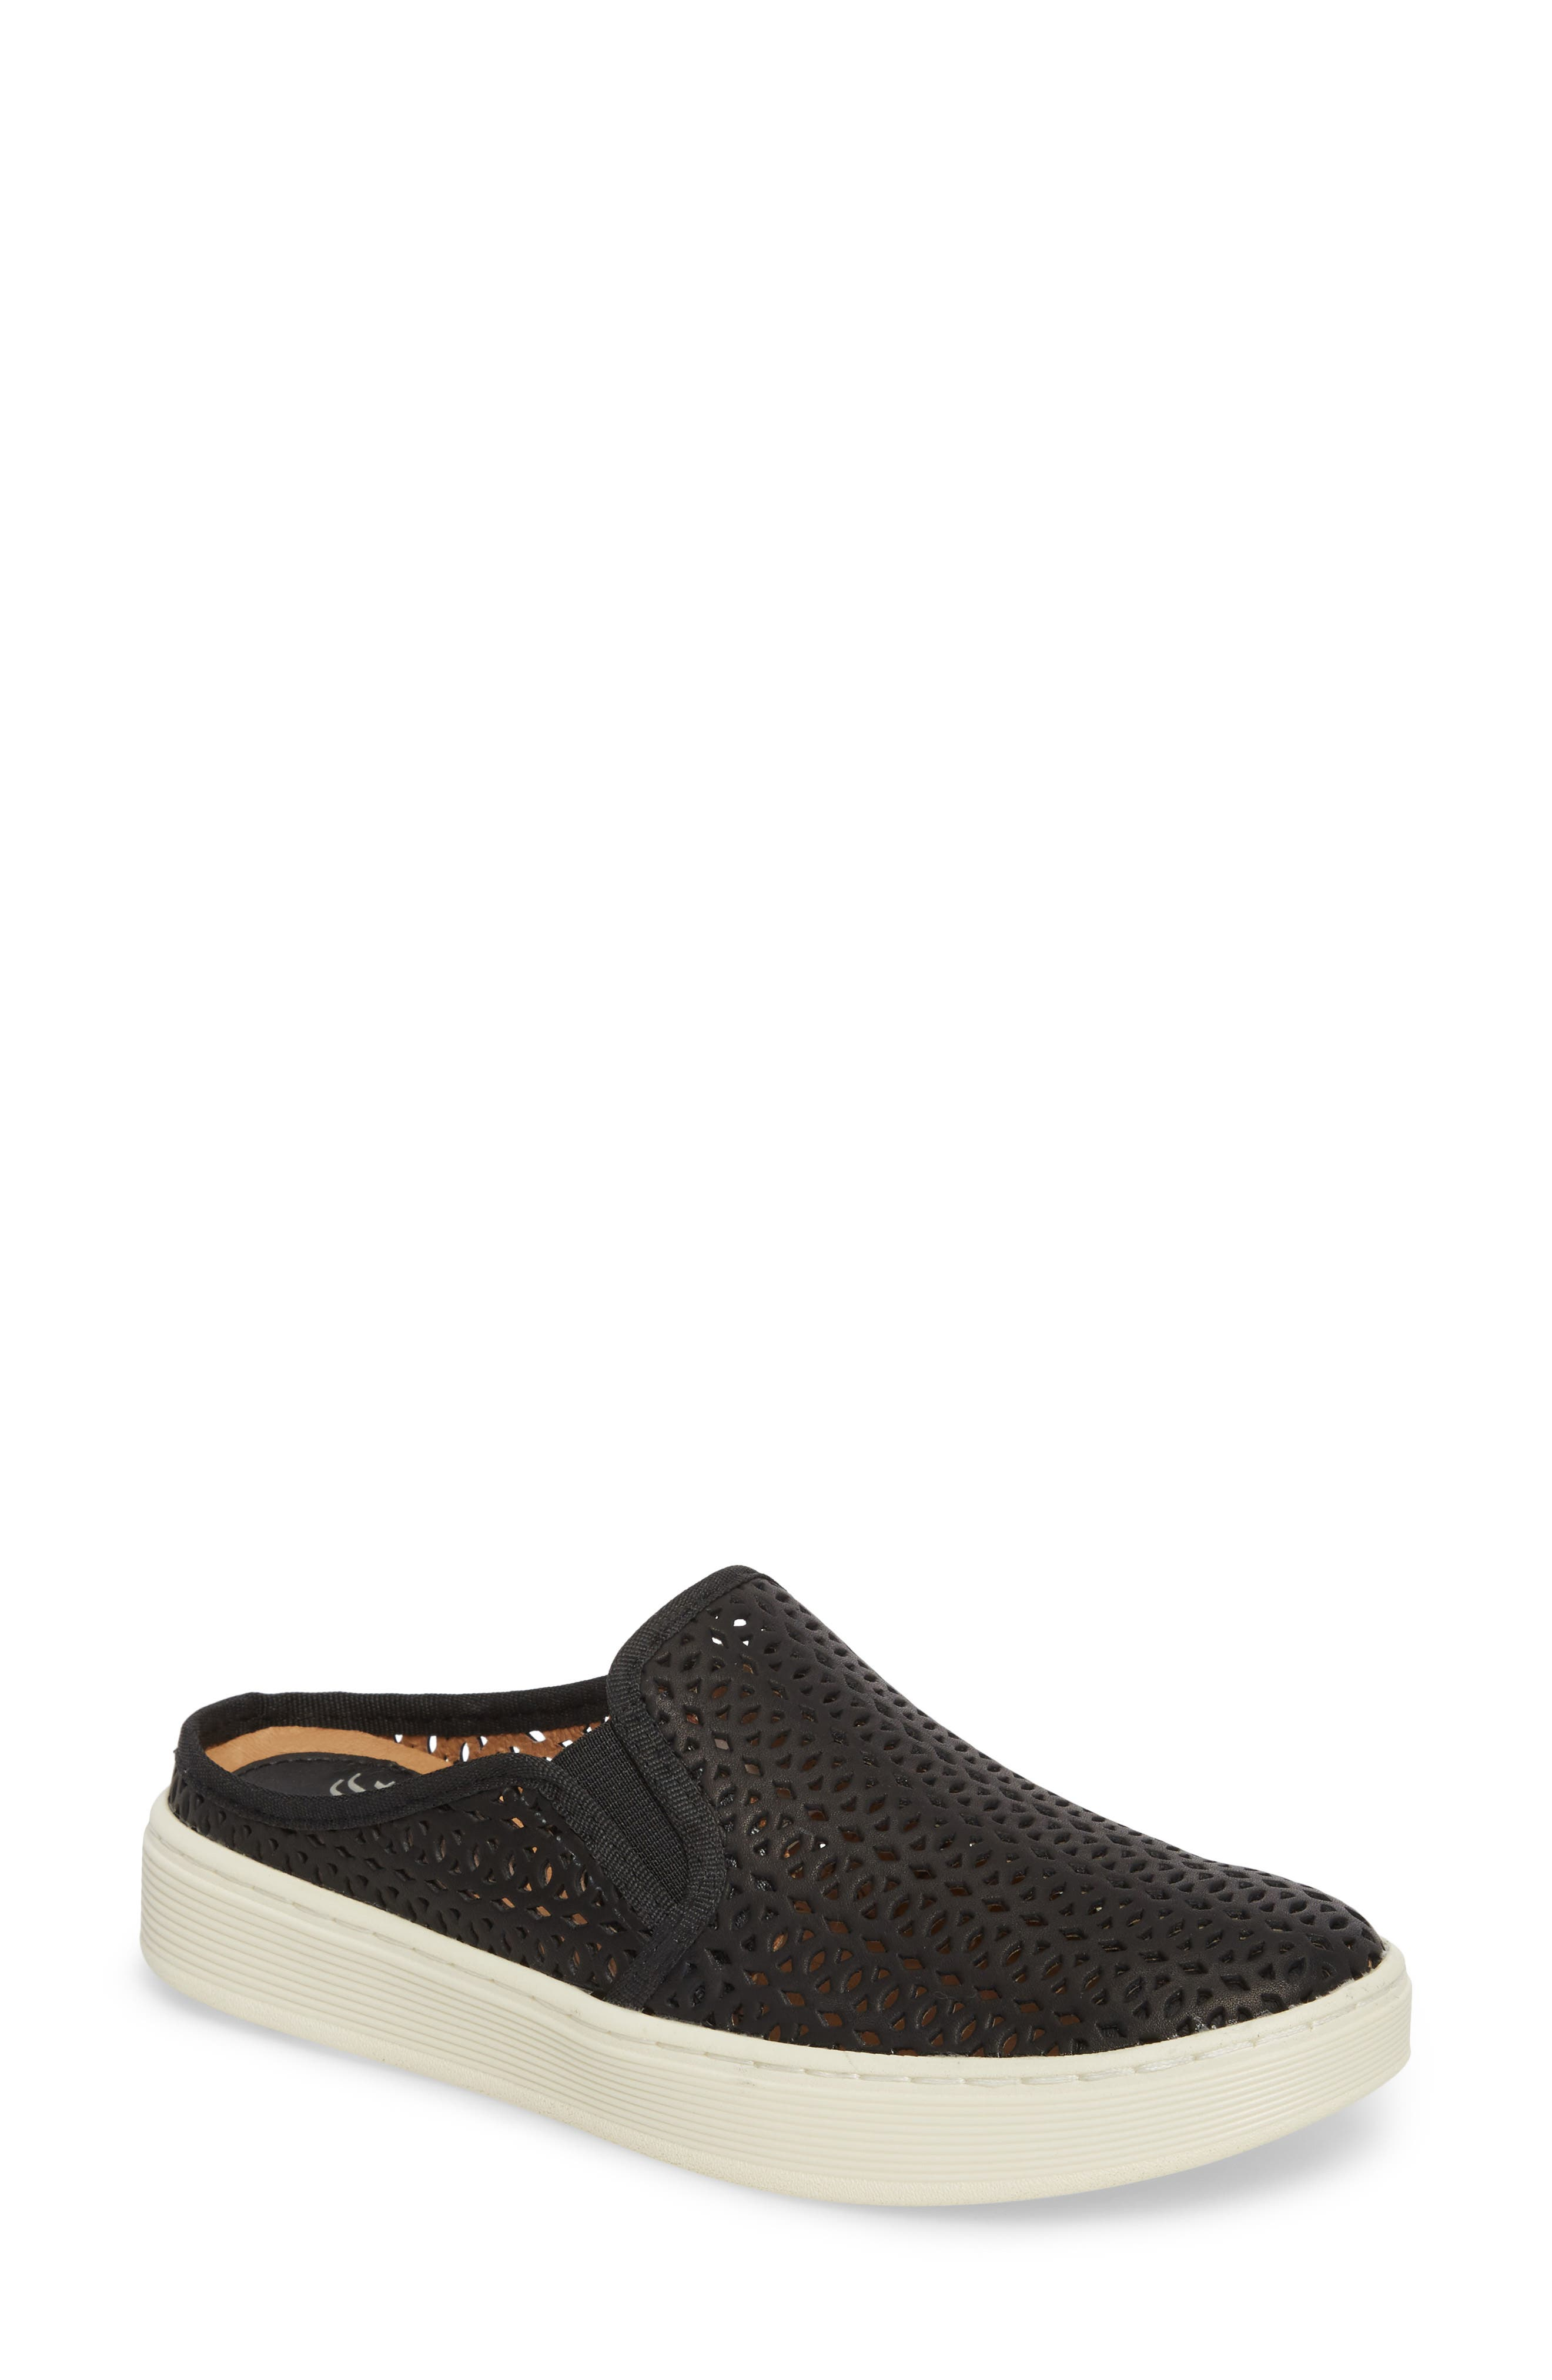 Somers II Sneaker,                             Main thumbnail 1, color,                             Black Leather